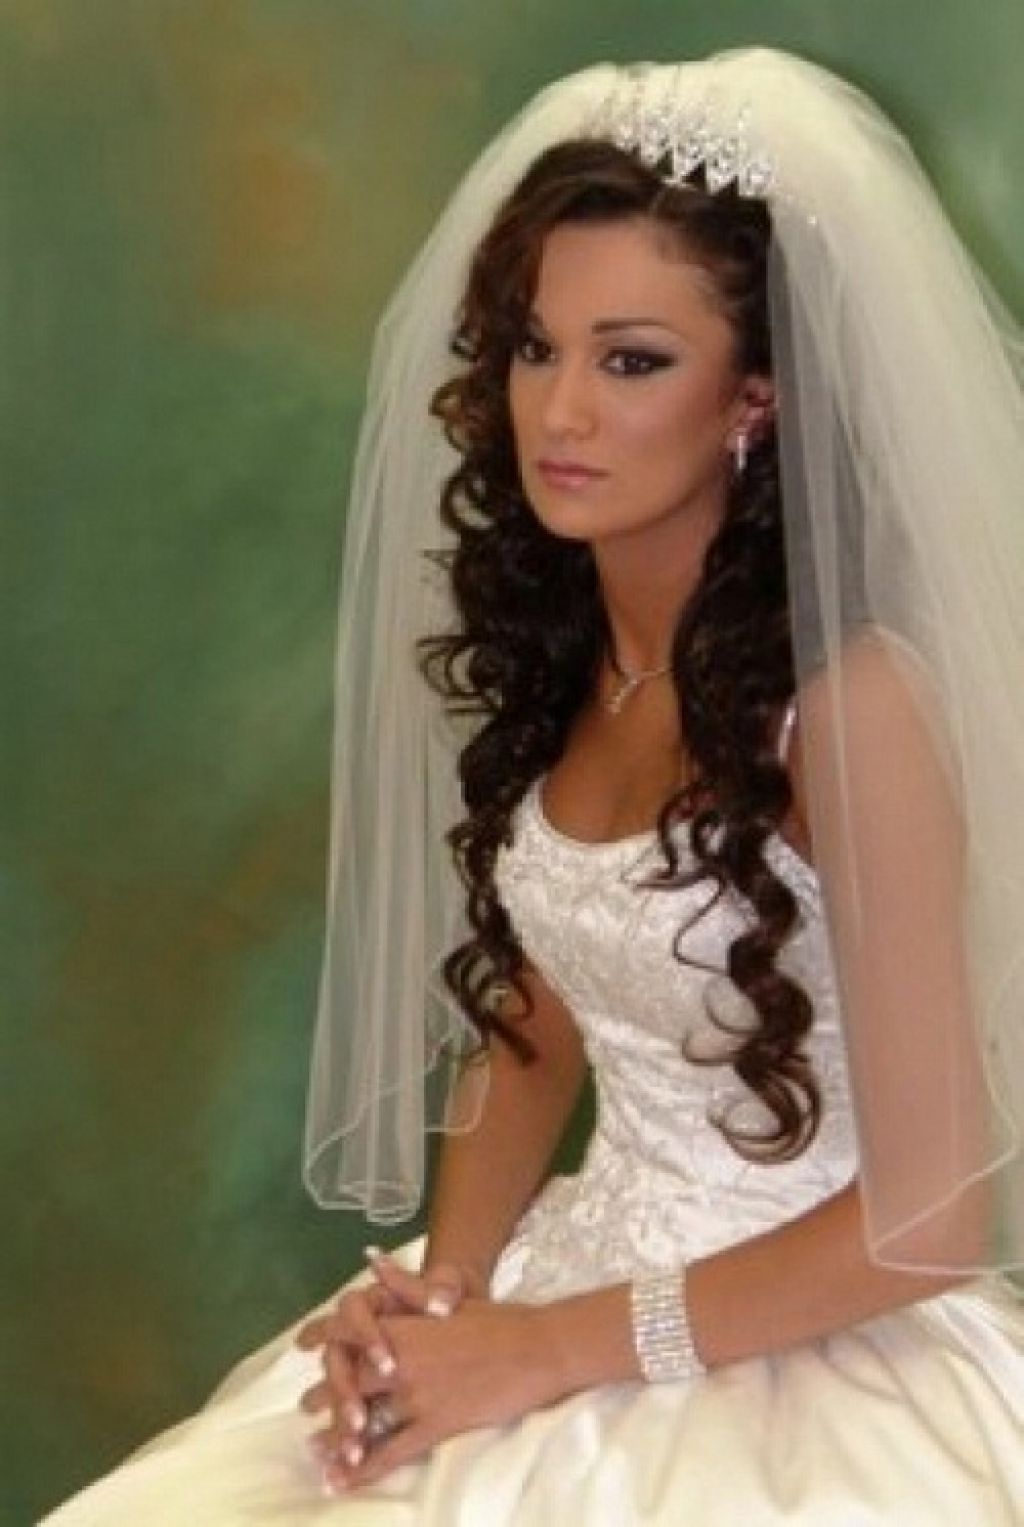 2017 Side Curls Bridal Hairstyles With Tiara And Lace Veil Throughout 20 Wedding Hairstyles With Tiara Ideas (View 2 of 20)